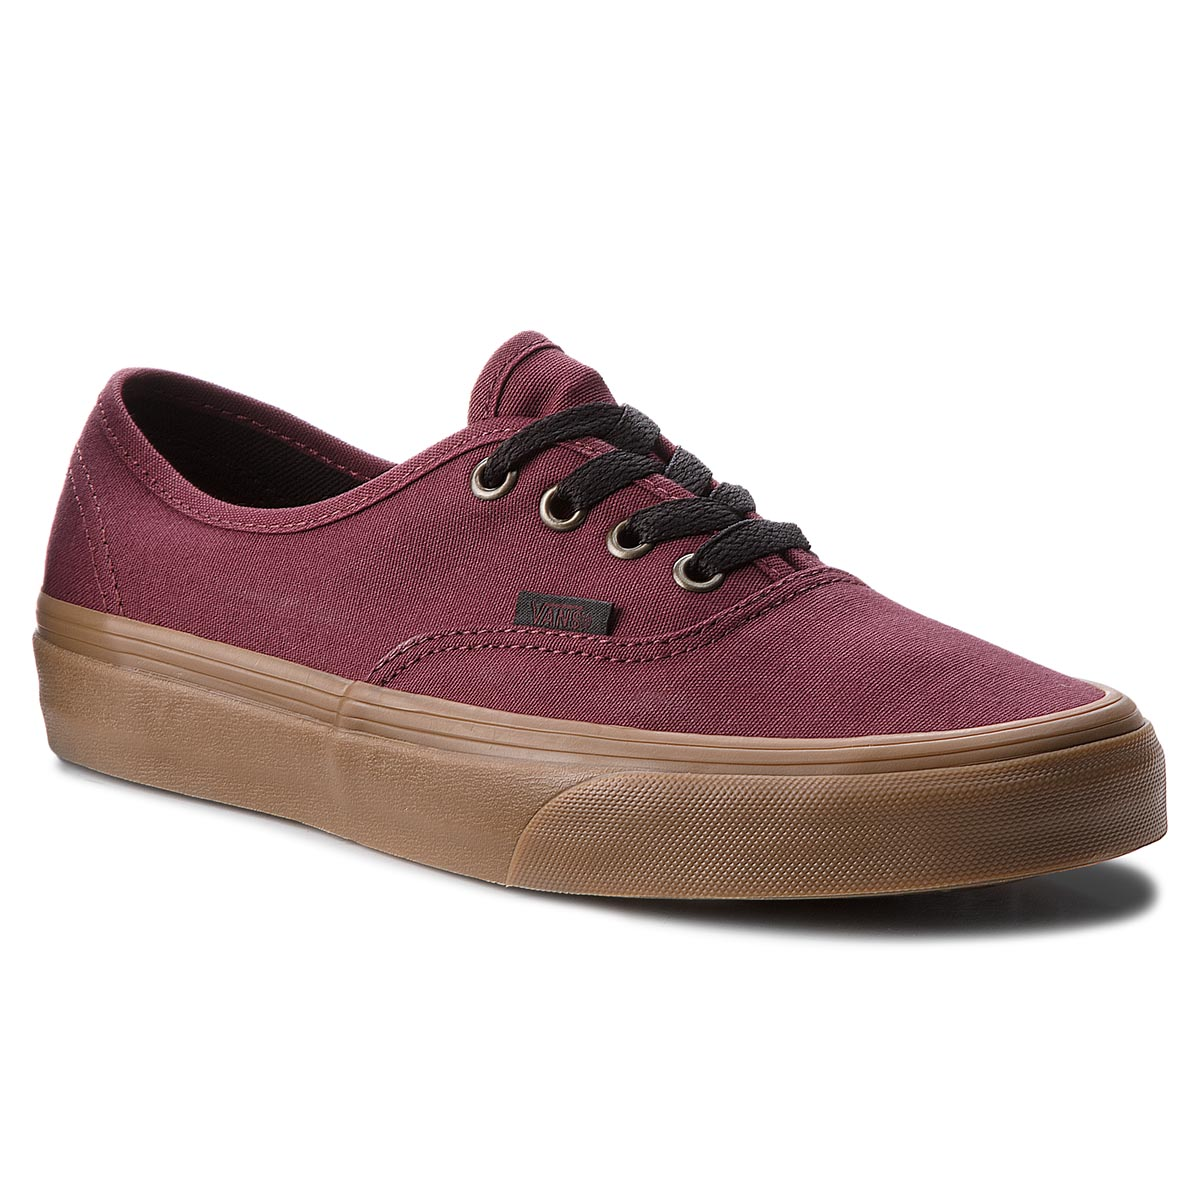 Teniși VANS - Authentic VN0A38EMU5A (Gum Outsole) Catawba Gra